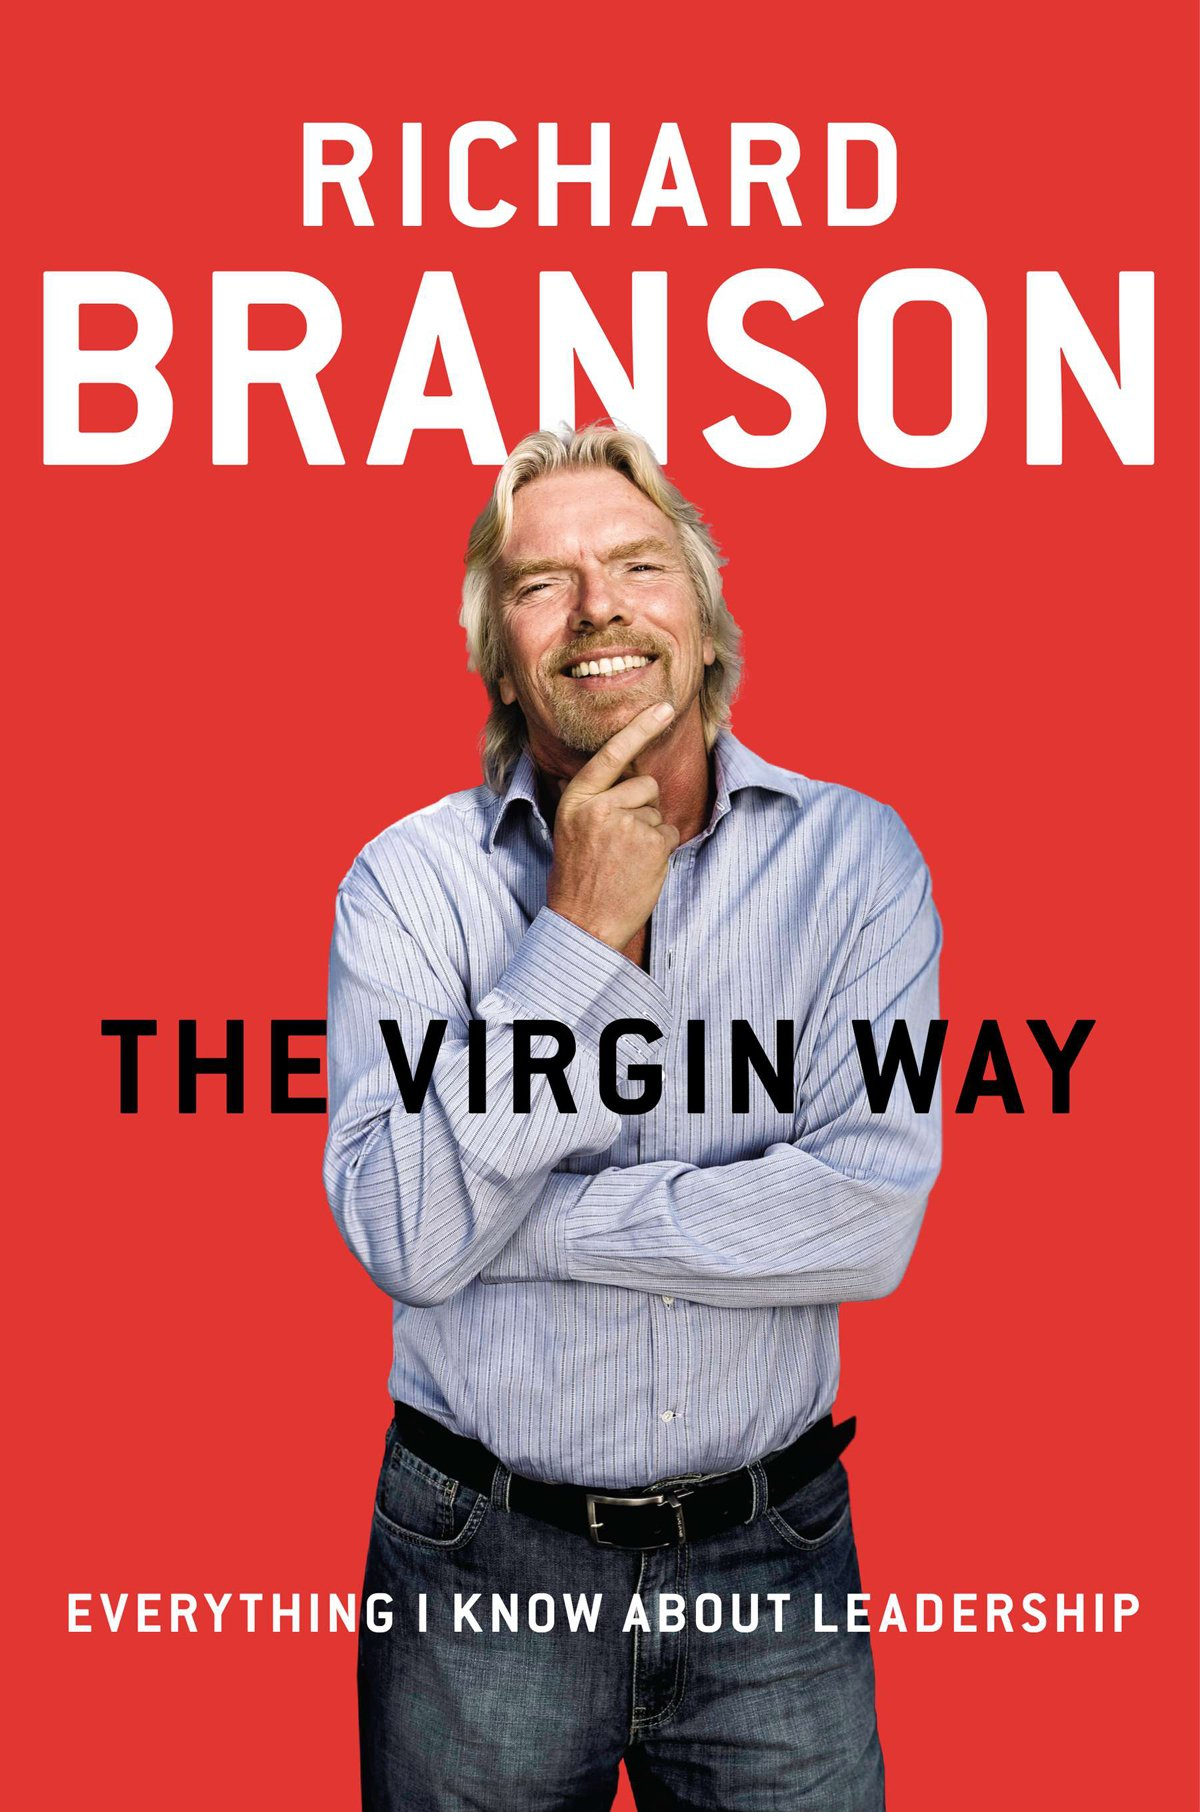 Can you use and share stories like Richard Branson?